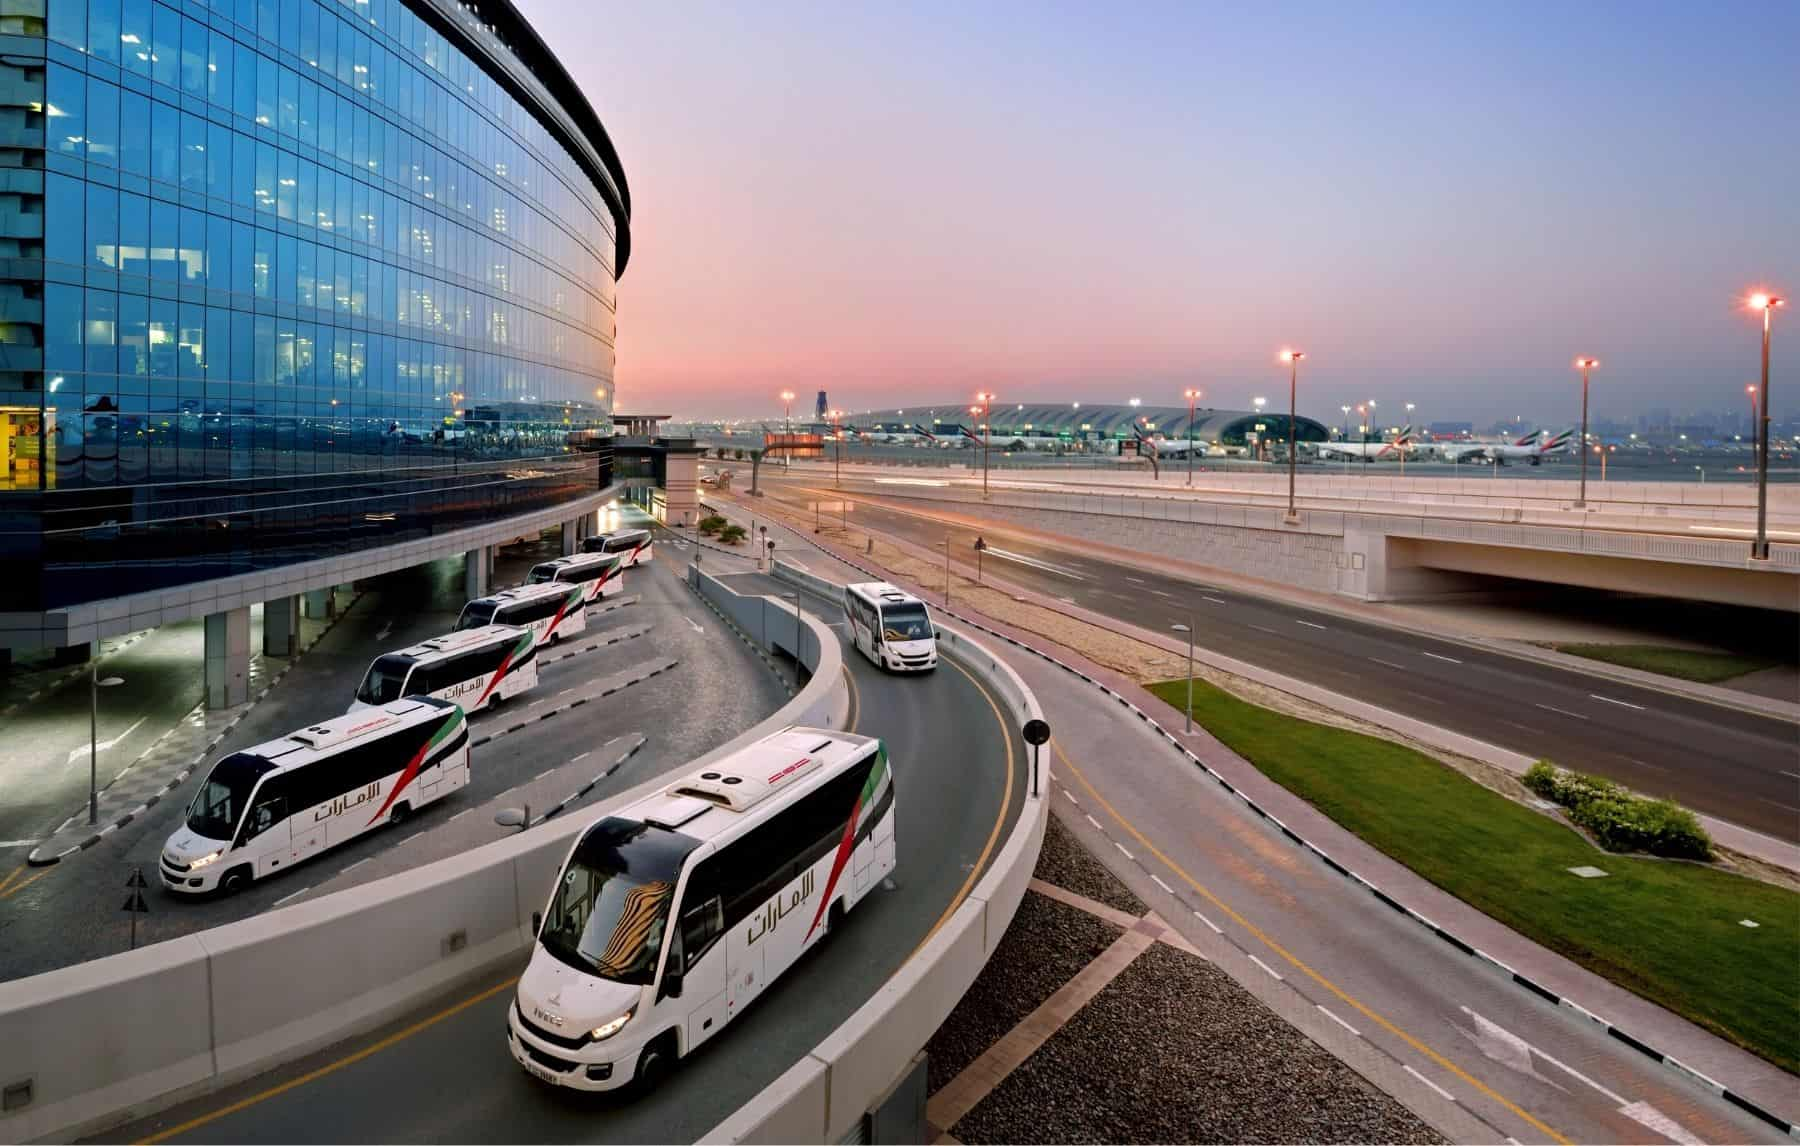 Emirates has revealed that nearly a third of its dedicated fleet of transport buses for cabin crew in Dubai will now operate on biofuel, taking another step forward on its environmental mission to reduce emissions.